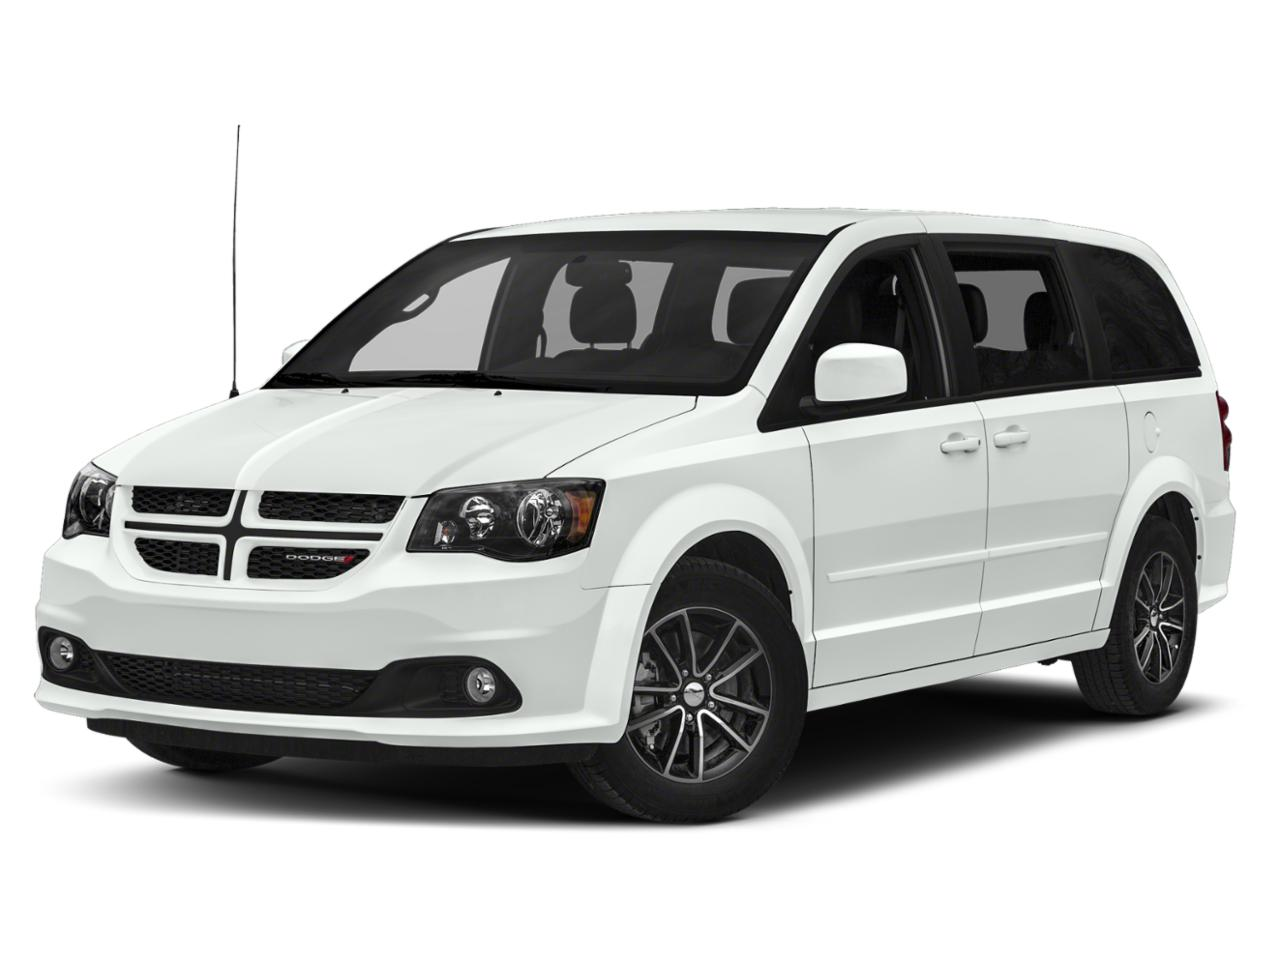 2019 Dodge Grand Caravan Vehicle Photo in Chickasha, OK 73018